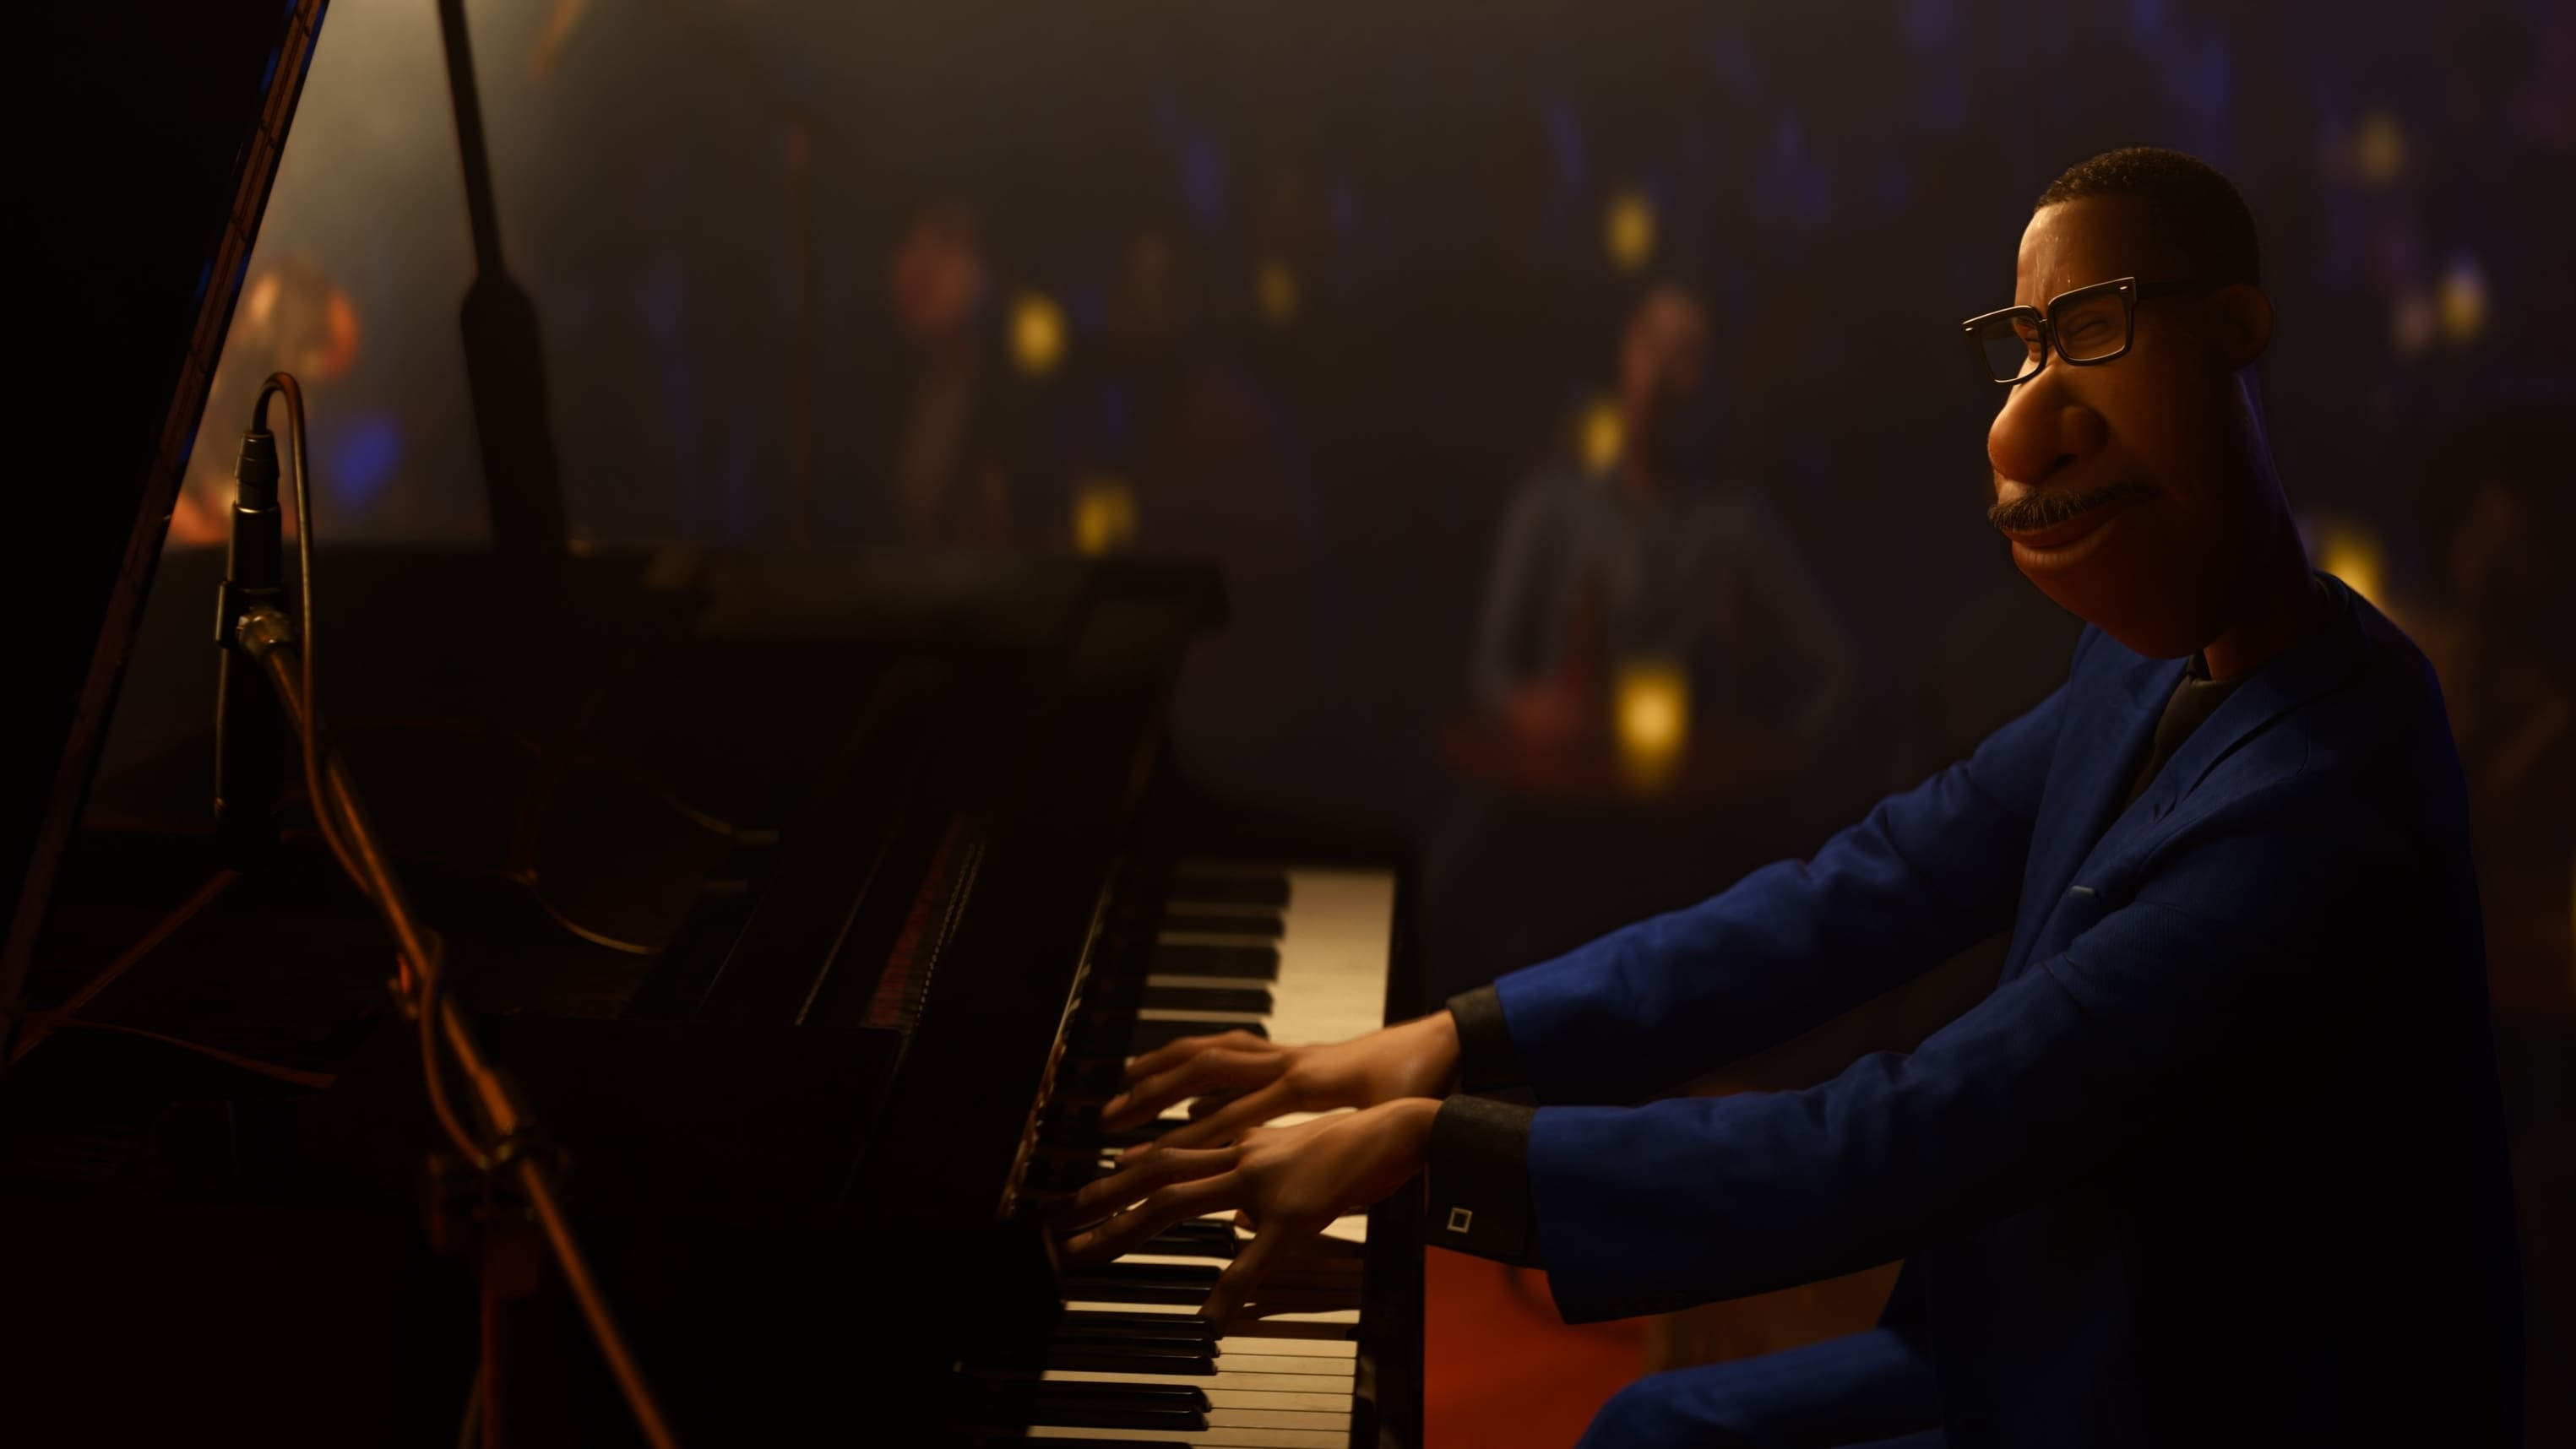 "In Disney and Pixar's ""Soul,"" Joe Gardner (voice of Jamie Foxx) is a middle-school band teacher whose true passion is playing jazz. When he gets lost in his music, he goes into ""the zone,"" an immersive state that causes the rest of the world to literally melt away. Globally renowned musician Jon Batiste will be writing original jazz music for the film, and Oscar®-winners Trent Reznor and Atticus Ross (""The Social Network""), from Nine Inch Nails, will compose an original score that will drift between the real and soul worlds. ""Soul"" will debut exclusively on Disney+ (where Disney+ is available) on December 25, 2020. © 2020 Disney/Pixar. All Rights Reserved."